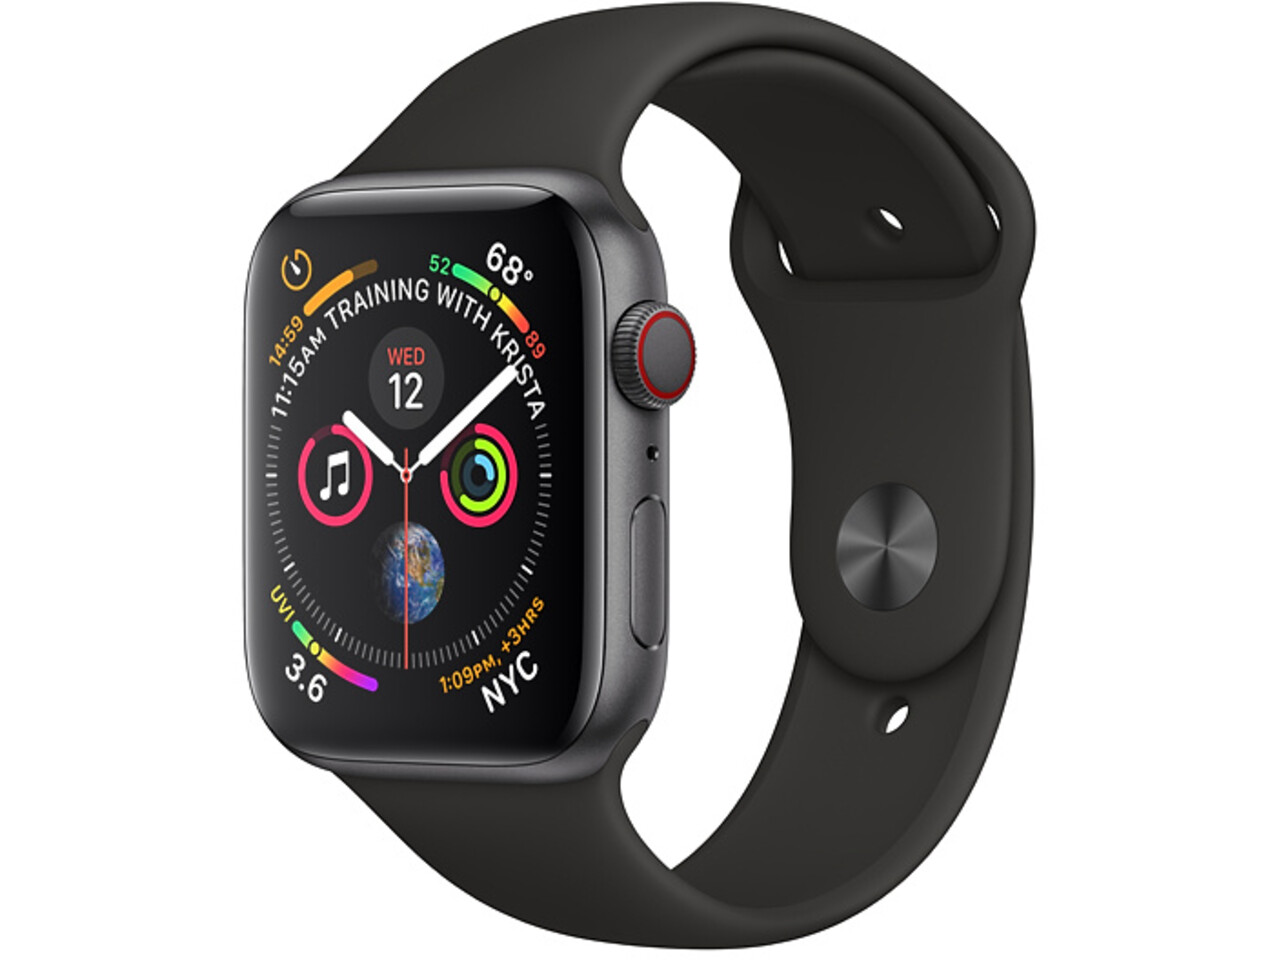 apple watch series 4 cellular 44mm space gray aluminum black sport band